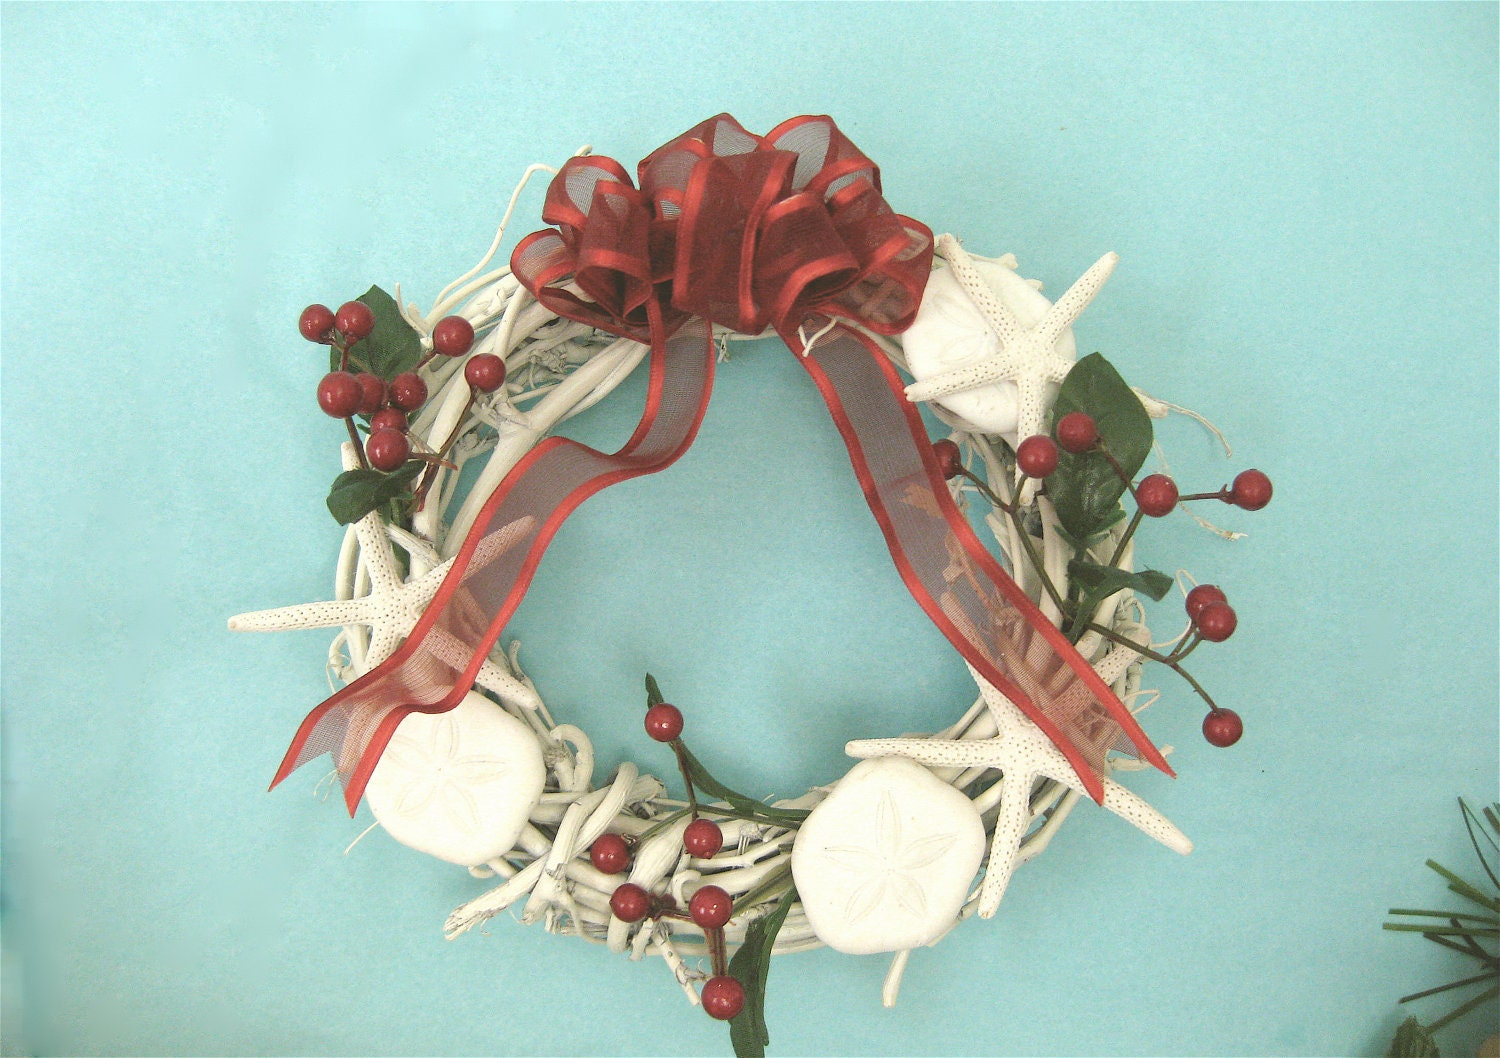 Beach christmas wreath in with starfish and sand dollars